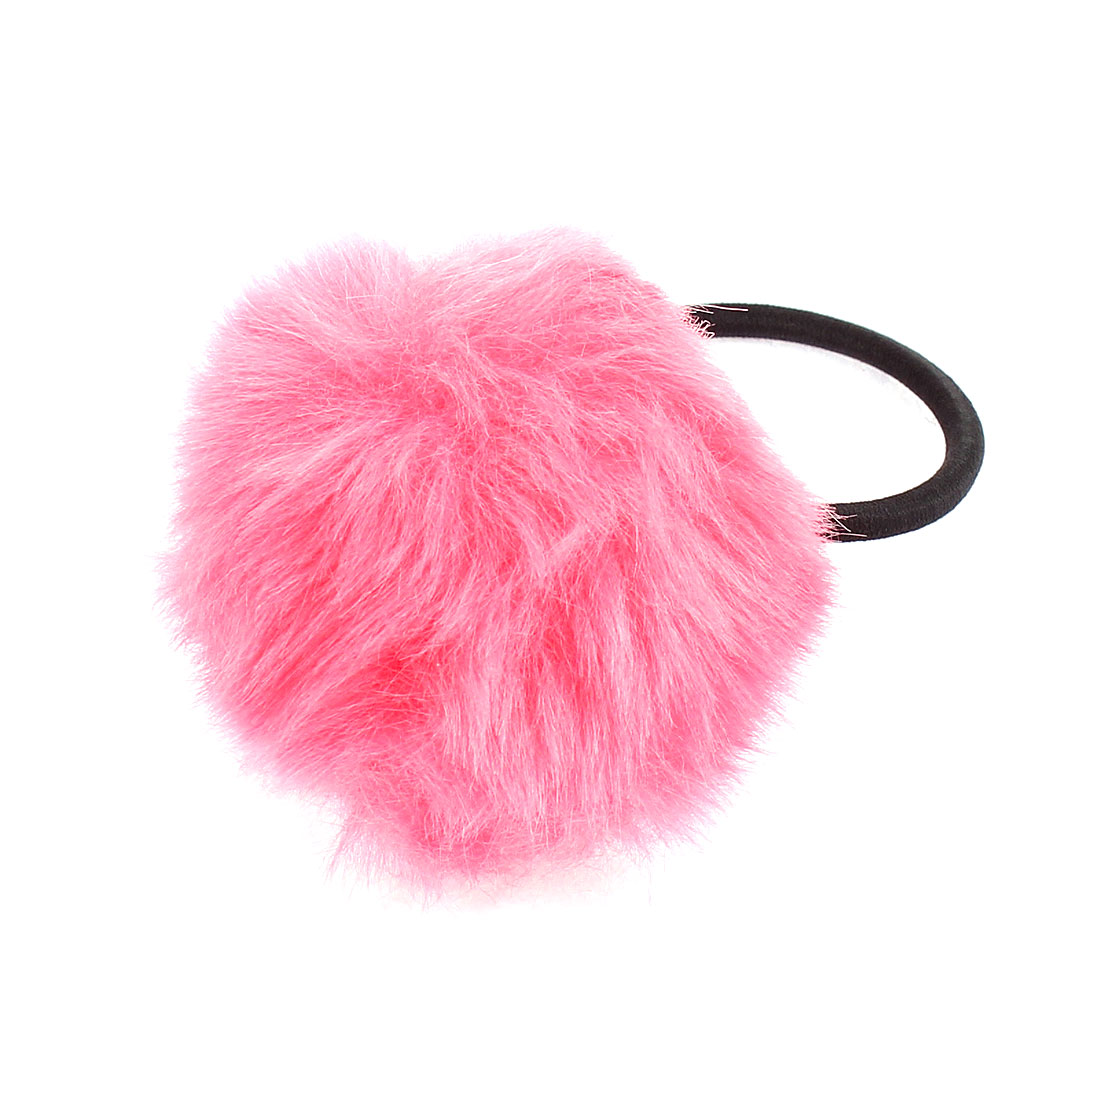 Lady Fluffy Faux Fur Decor Stretchy Band Hair Tie Ponytail Hairband Magenta